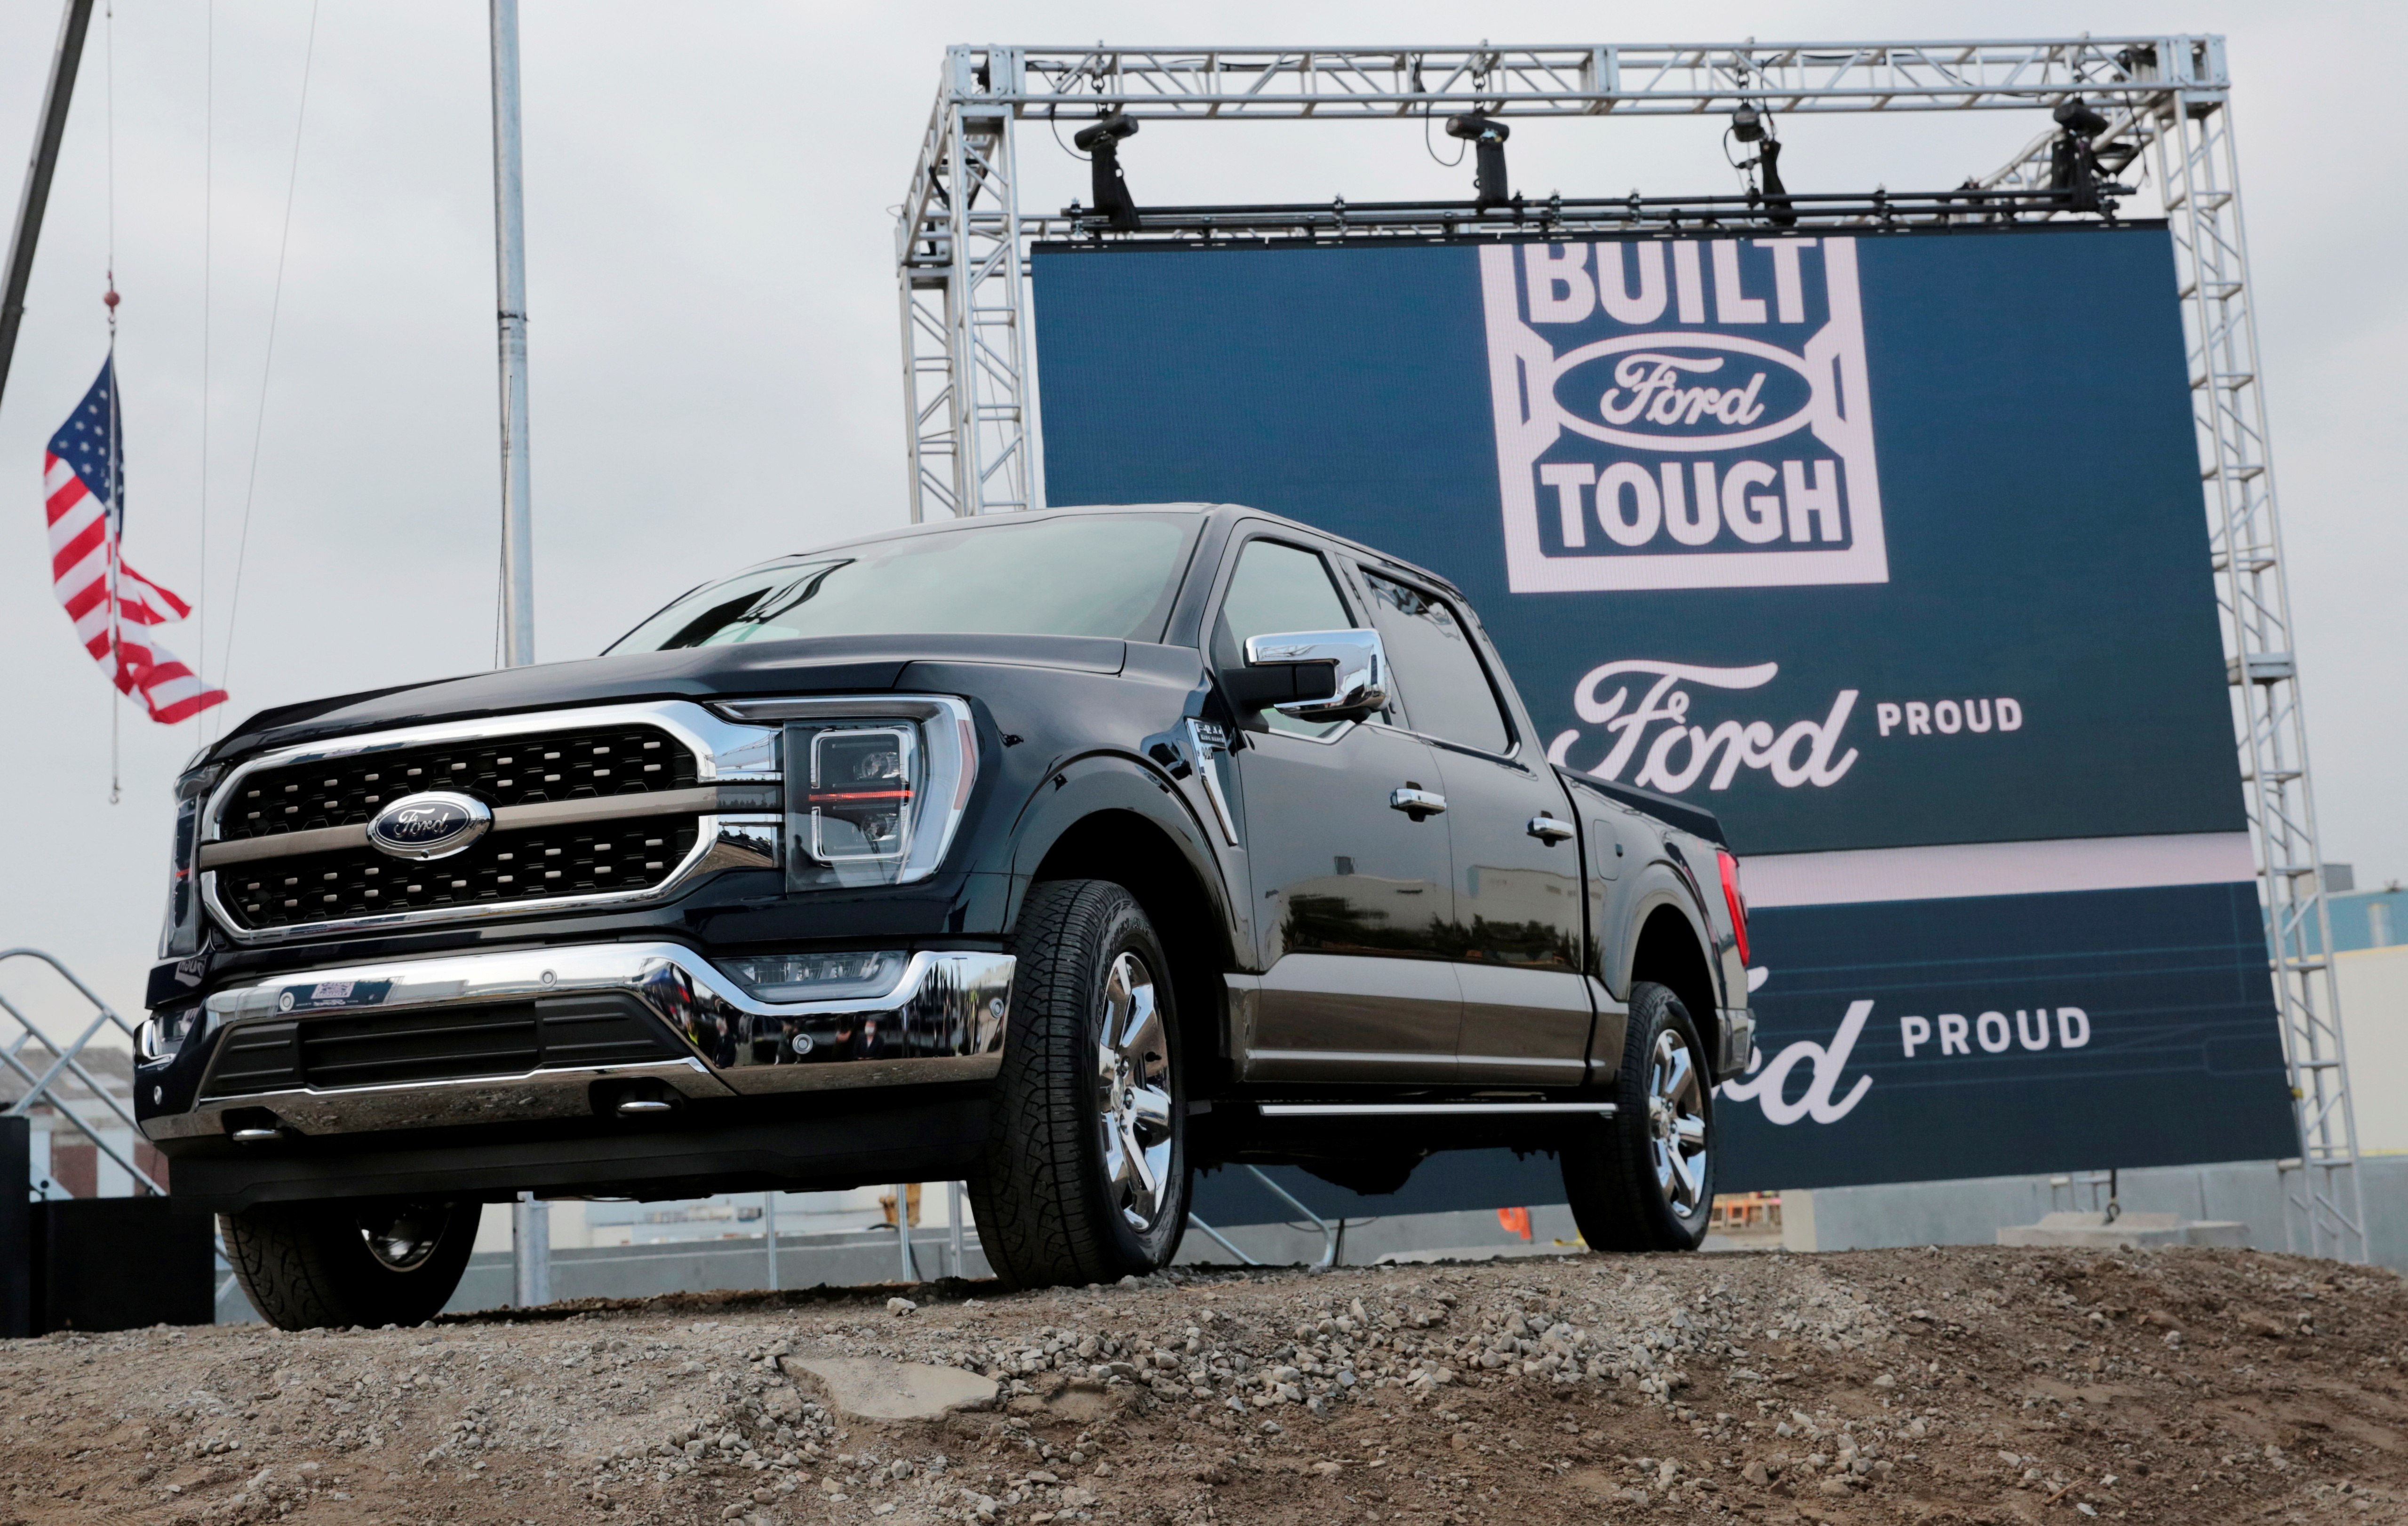 Ford Motor Co. displays a new 2021 Ford F-150 pickup truck at the Rouge Complex in Dearborn, Michigan, U.S. September 17, 2020. REUTERS/Rebecca Cook/File Photo